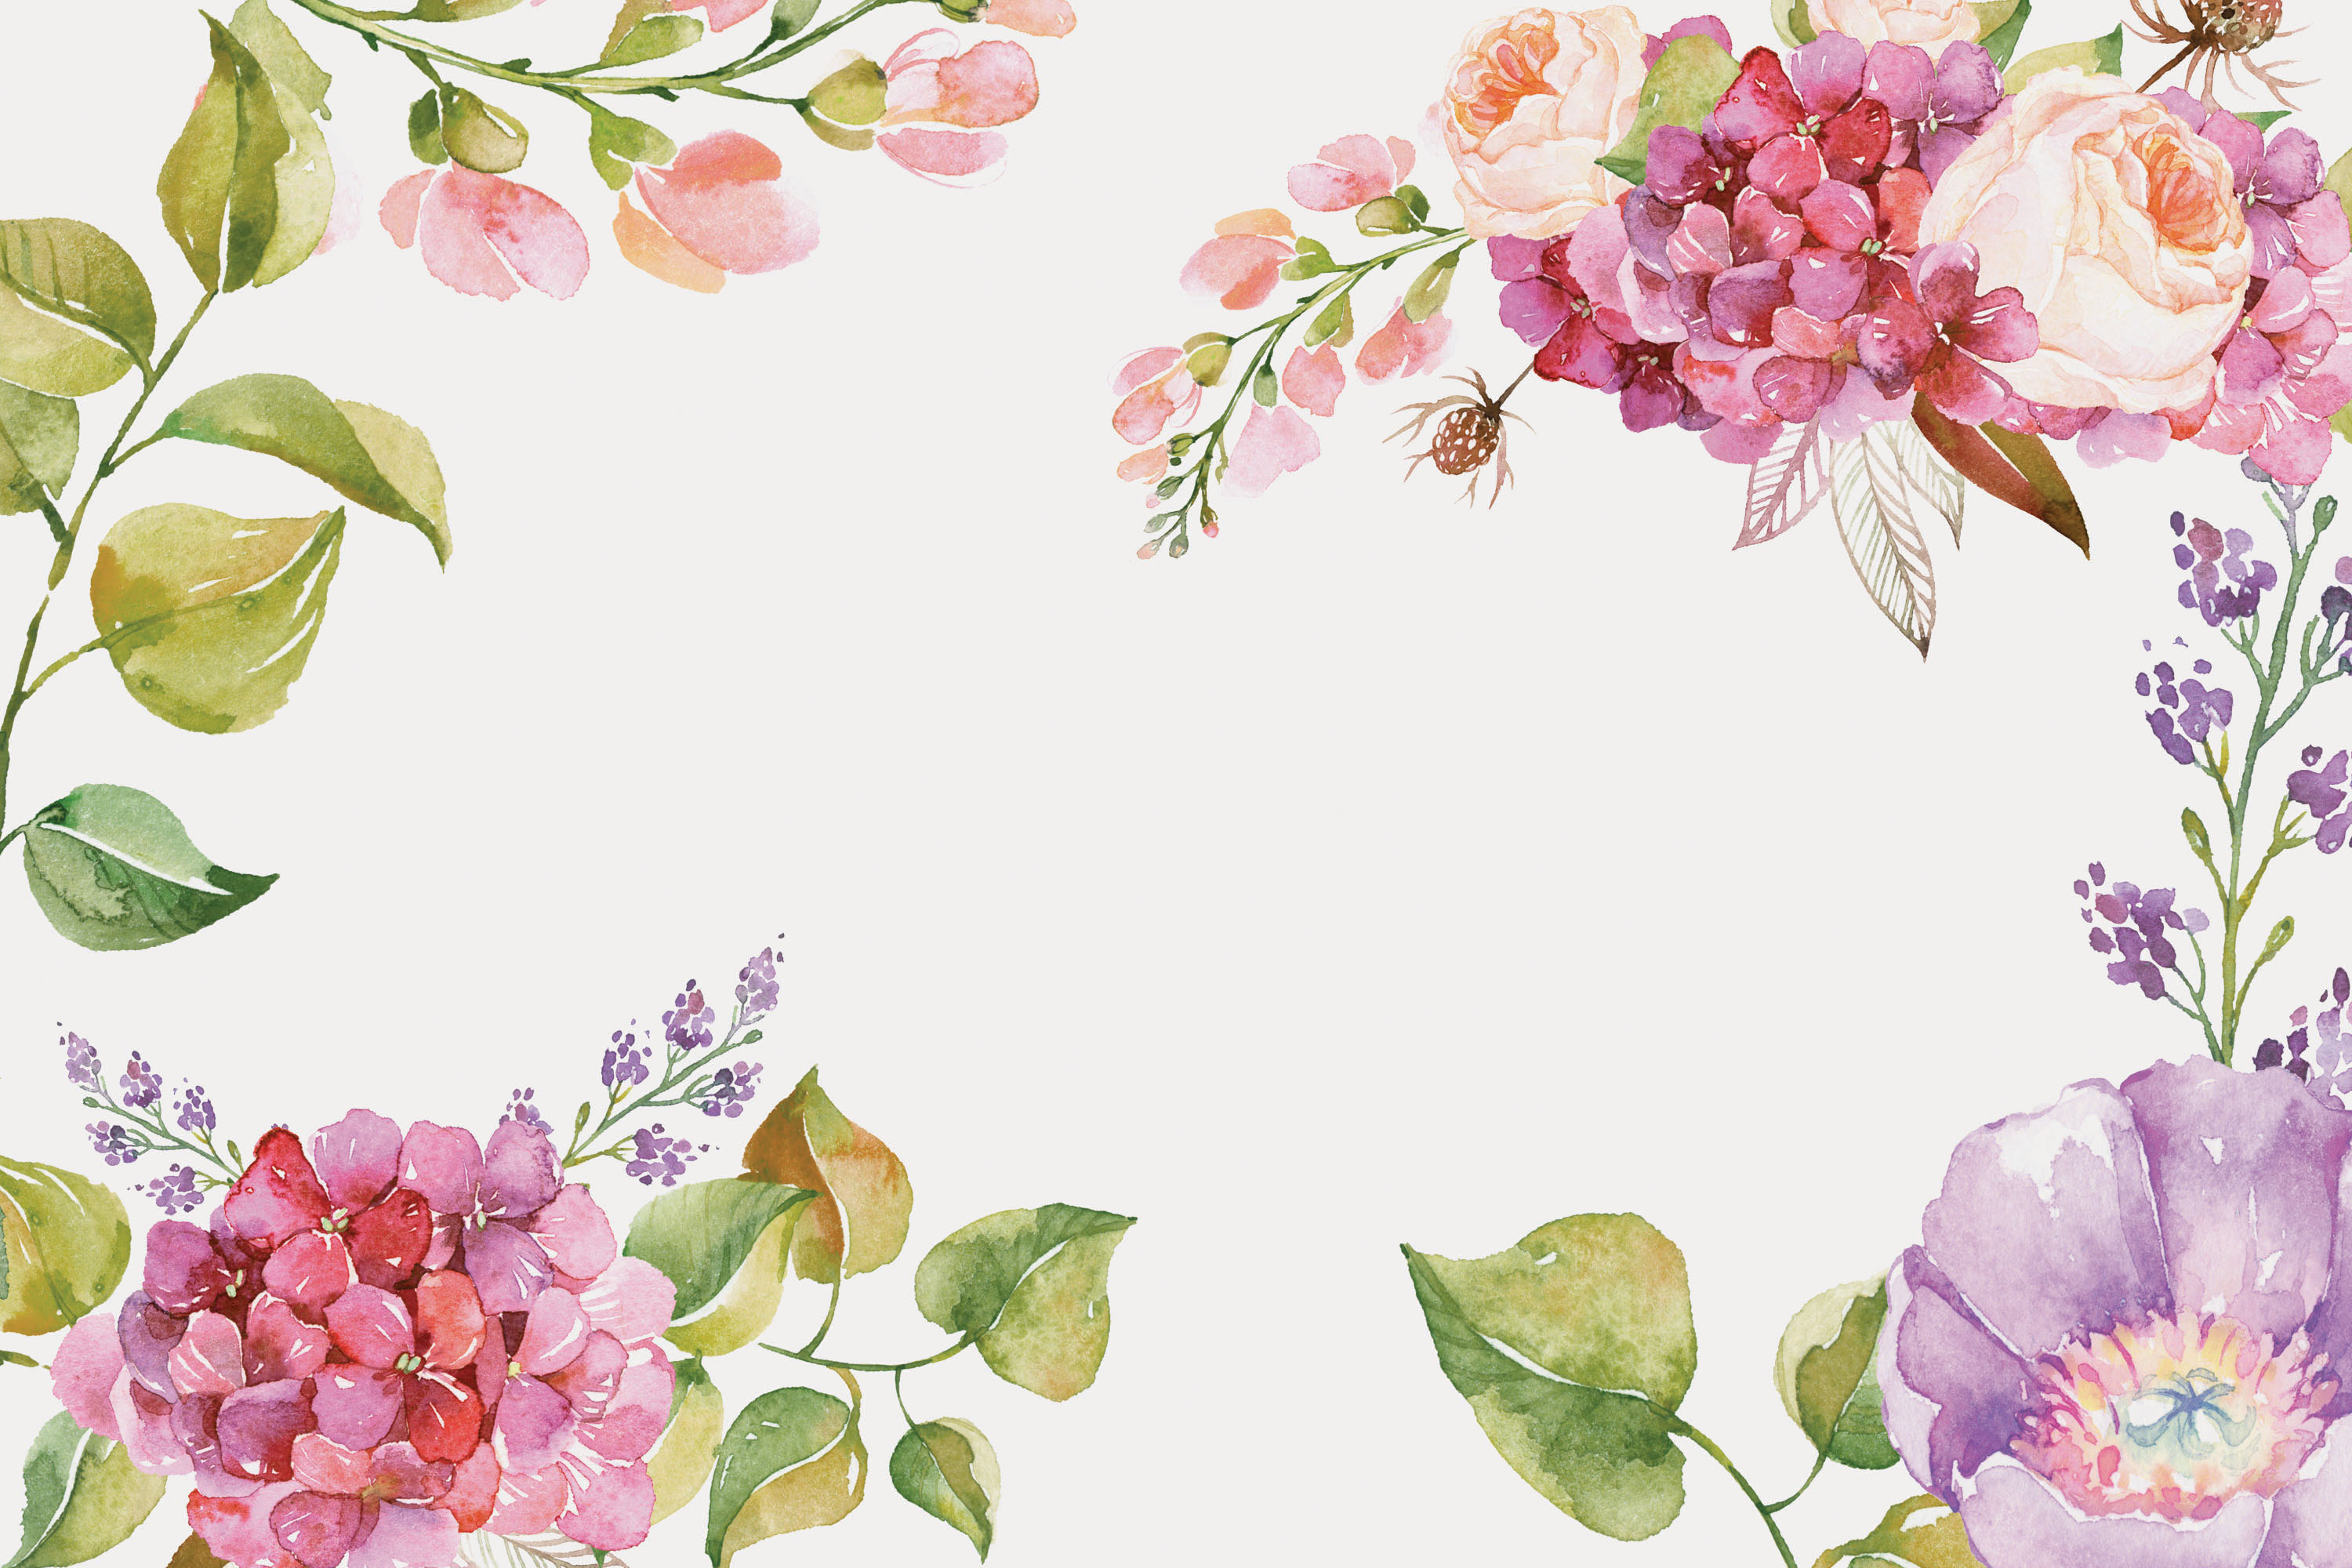 posters floral watercolor background  watercolor  flowers